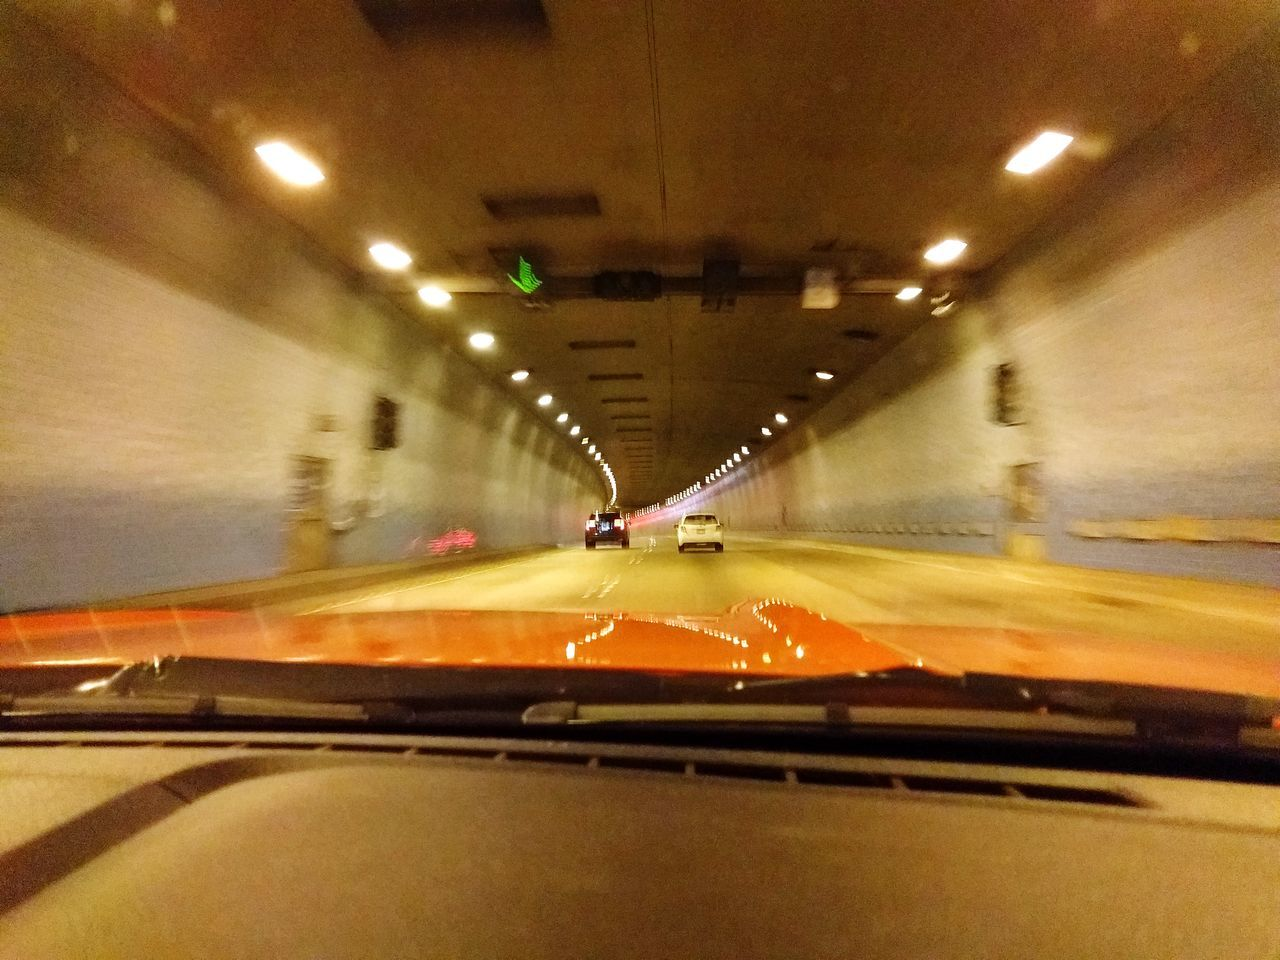 speeding through the tunnel in a convertible stang Transportation The Way Forward Motion Oahu, Hawaii Taking Photos In A Car Car On The Road Convertible Tunnel H3 Freeway Illuminated Speeding Hot Car In A Tunnel Overhead Lighting